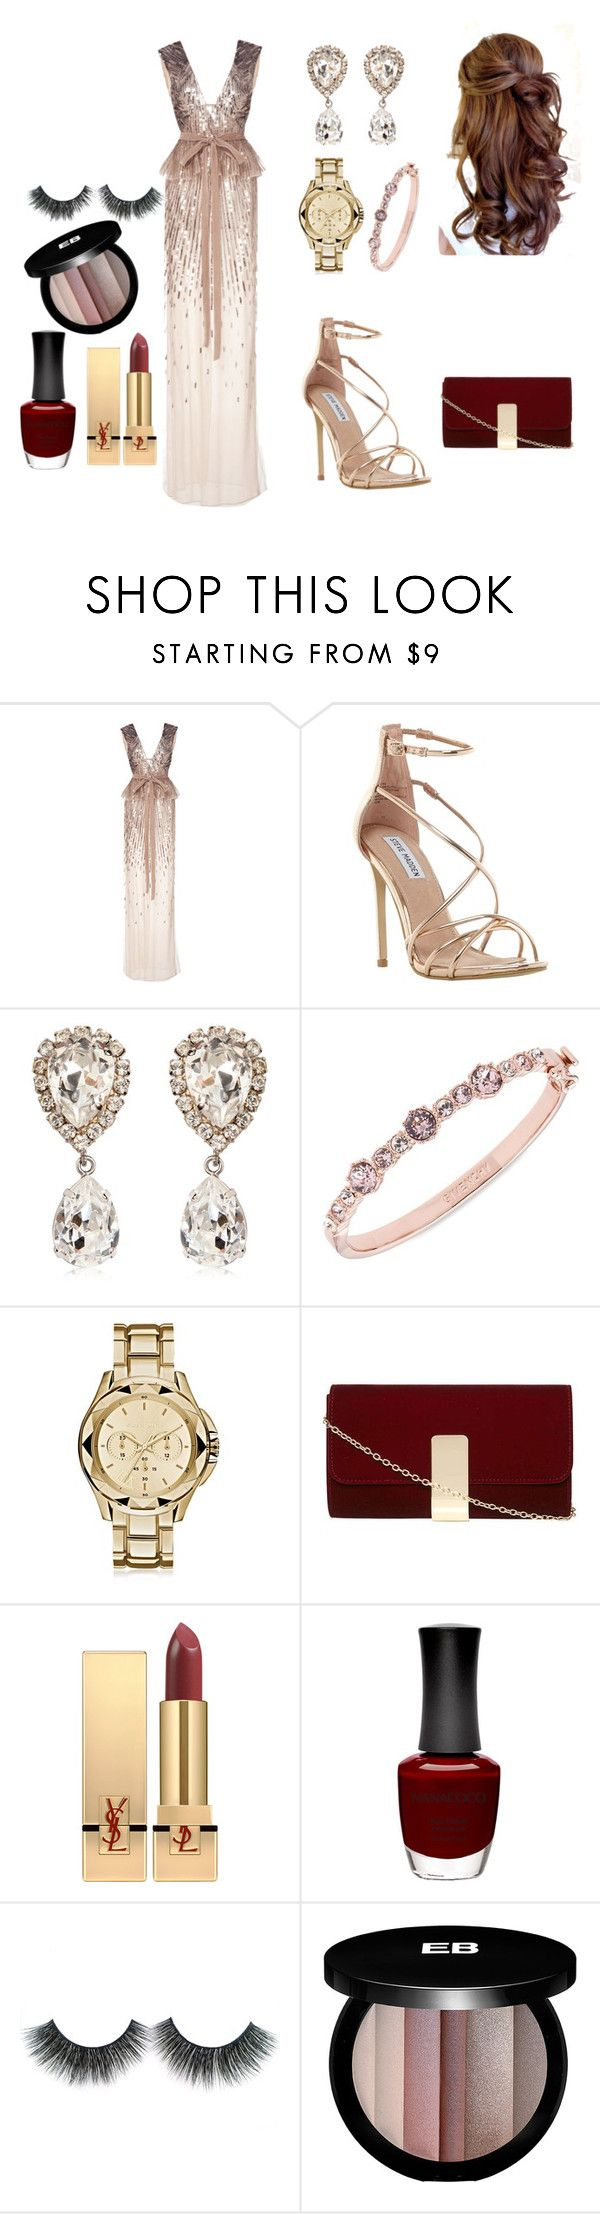 """""""Untitled #17"""" by hajar-111 on Polyvore featuring Monique Lhuillier, Steve Madden, Dolce&Gabbana, Givenchy, Karl Lagerfeld, Dorothy Perkins, Yves Saint Laurent, Nanacoco and Edward Bess"""